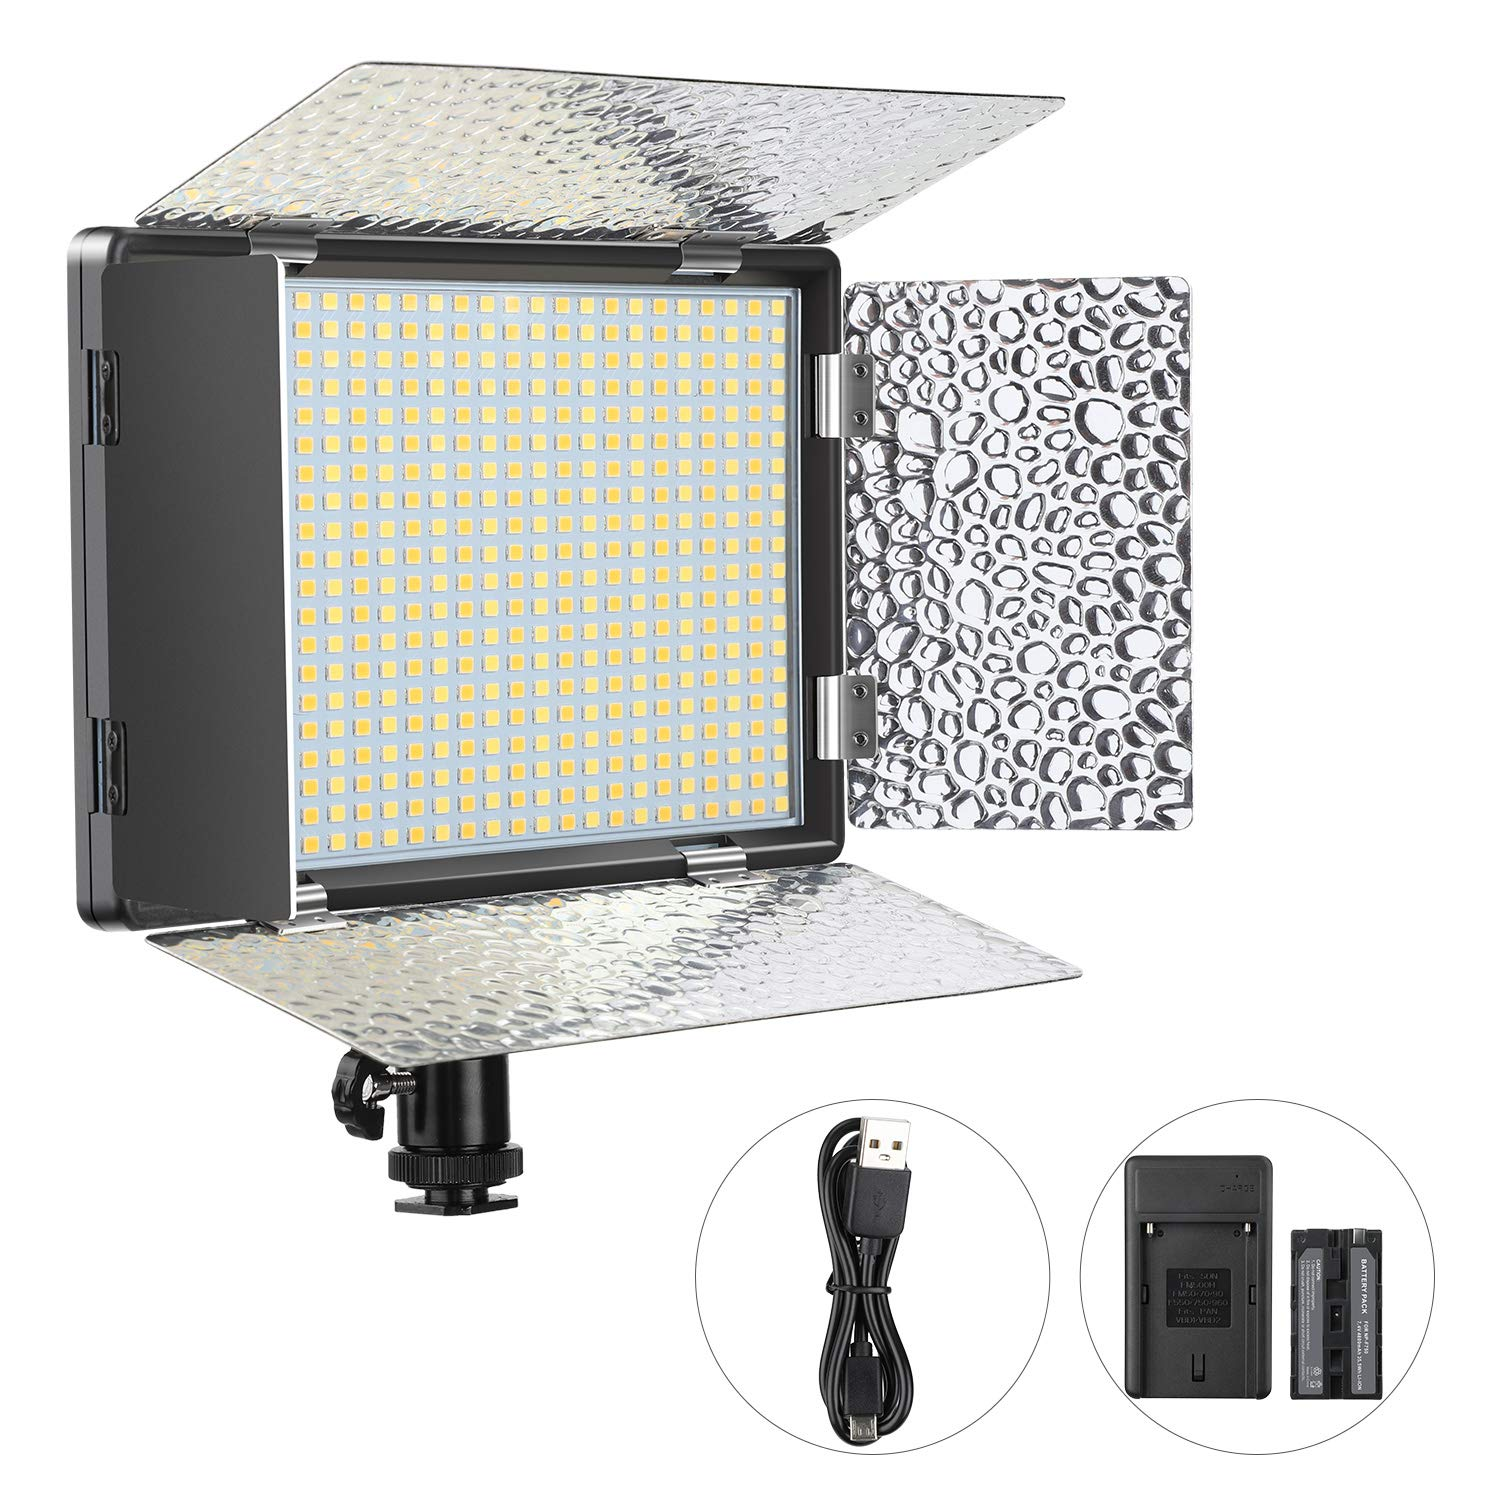 ENEGON Camera Dimmable Video Light Panel (520 LED) with 4000mAh Rechargeable Battery,Charger,hot Shoe for Canon Panasonic Nikon DSLR Cameras,Camcorder, Tripod,CRI95+ 3200K-5600K